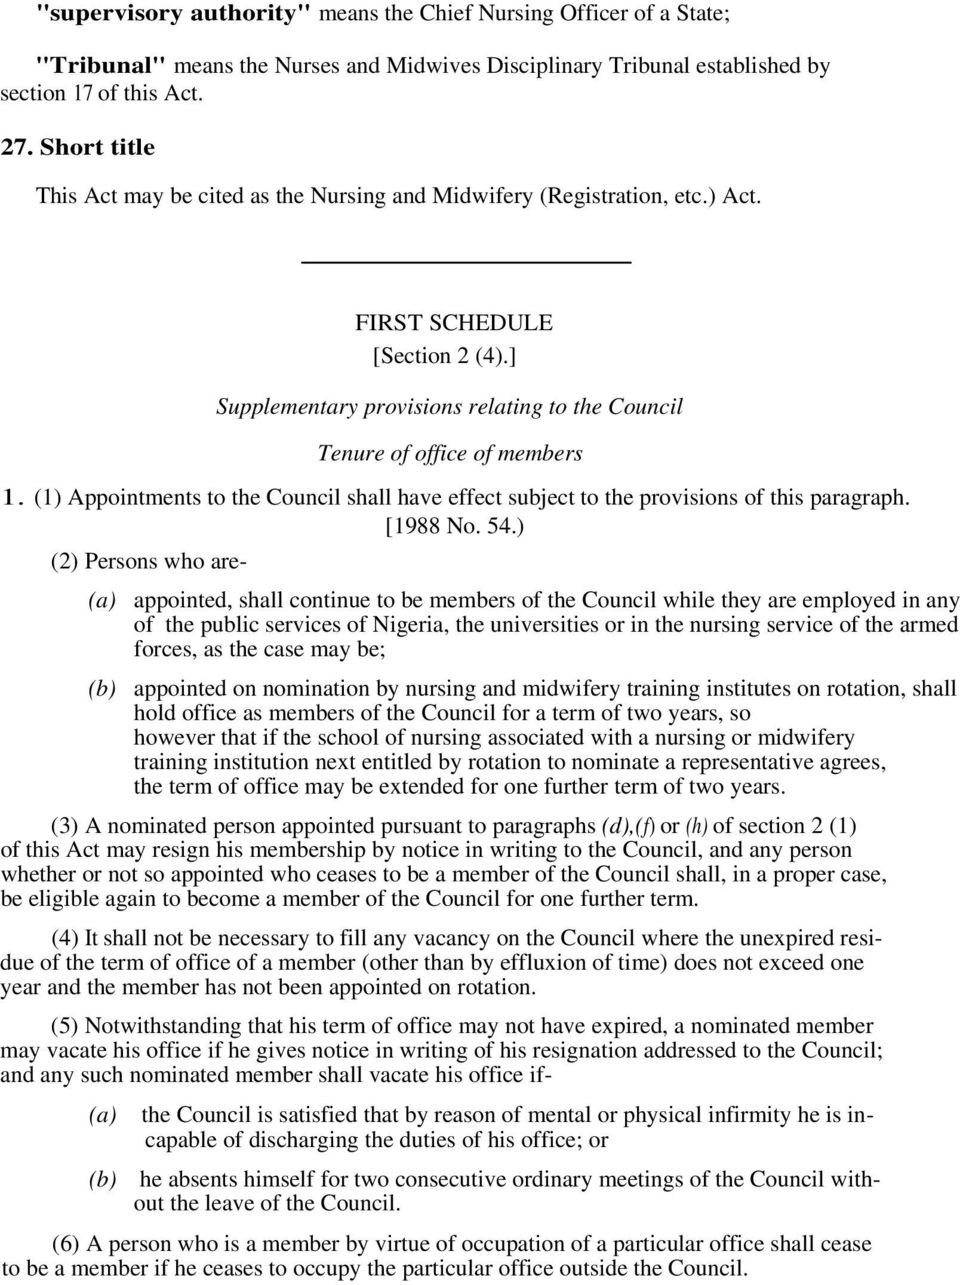 (1) Appointments to the Council shall have effect subject to the provisions of this paragraph. [1988 No. 54.